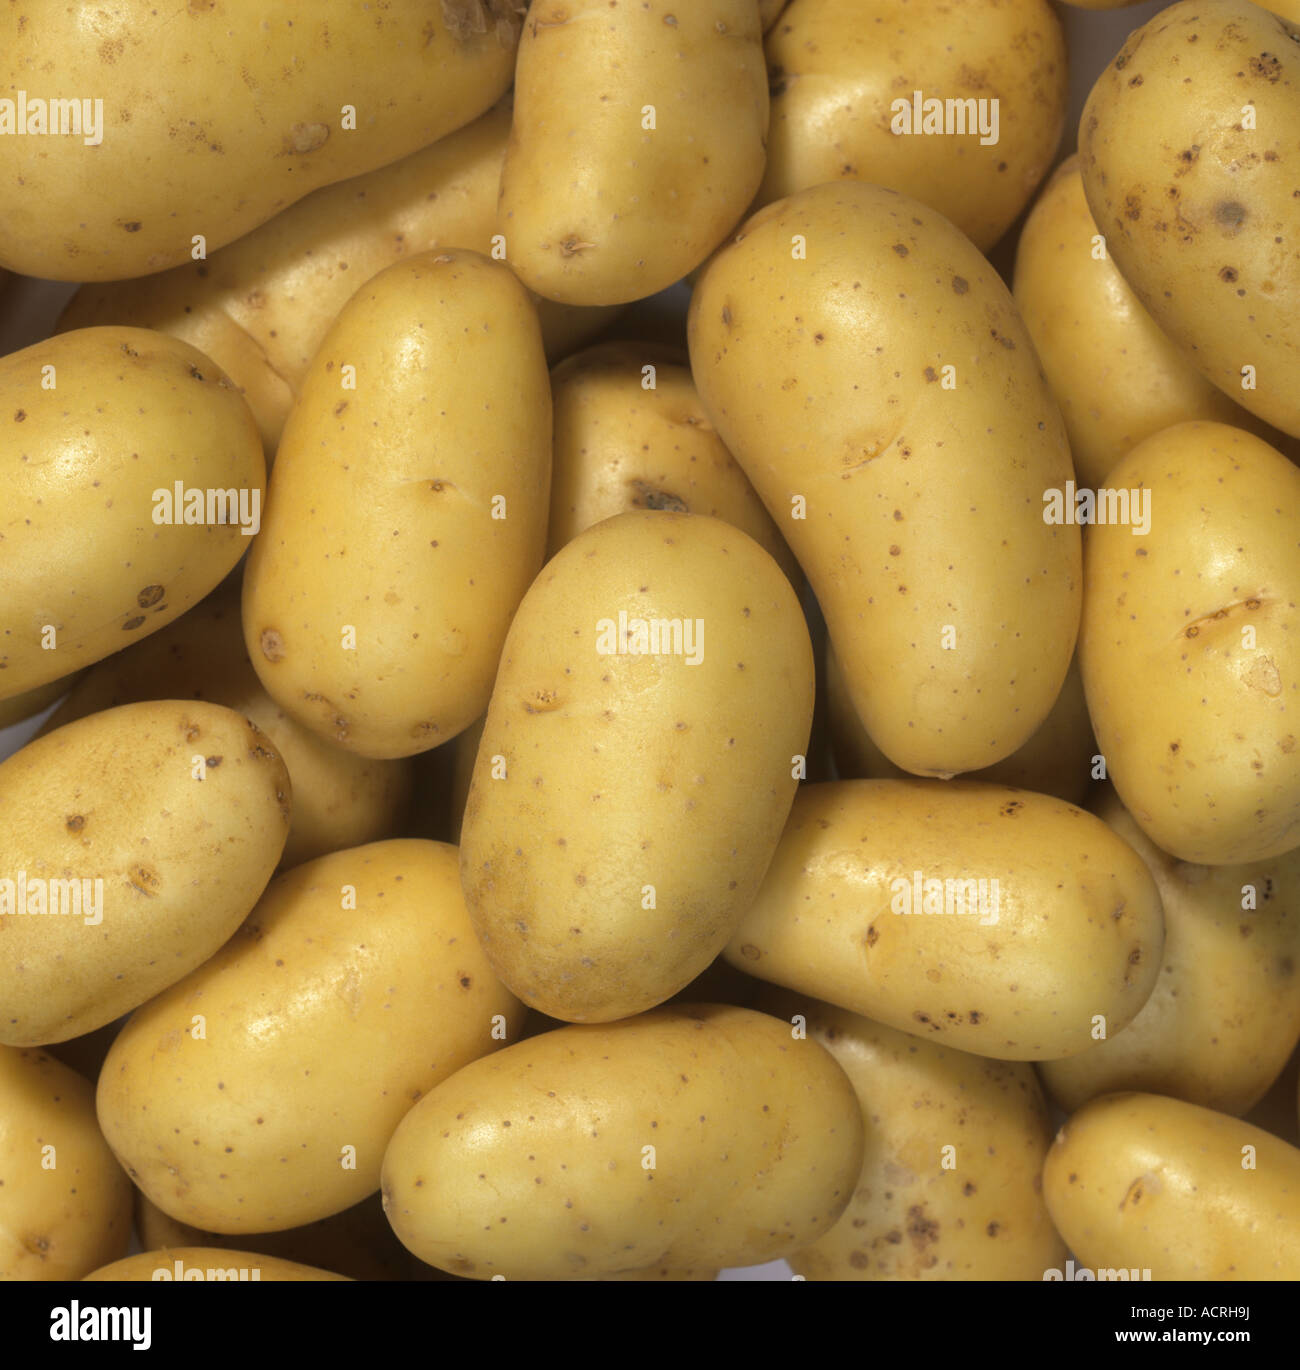 New Charlotte potatoes tubers post harvest and shop bought - Stock Image